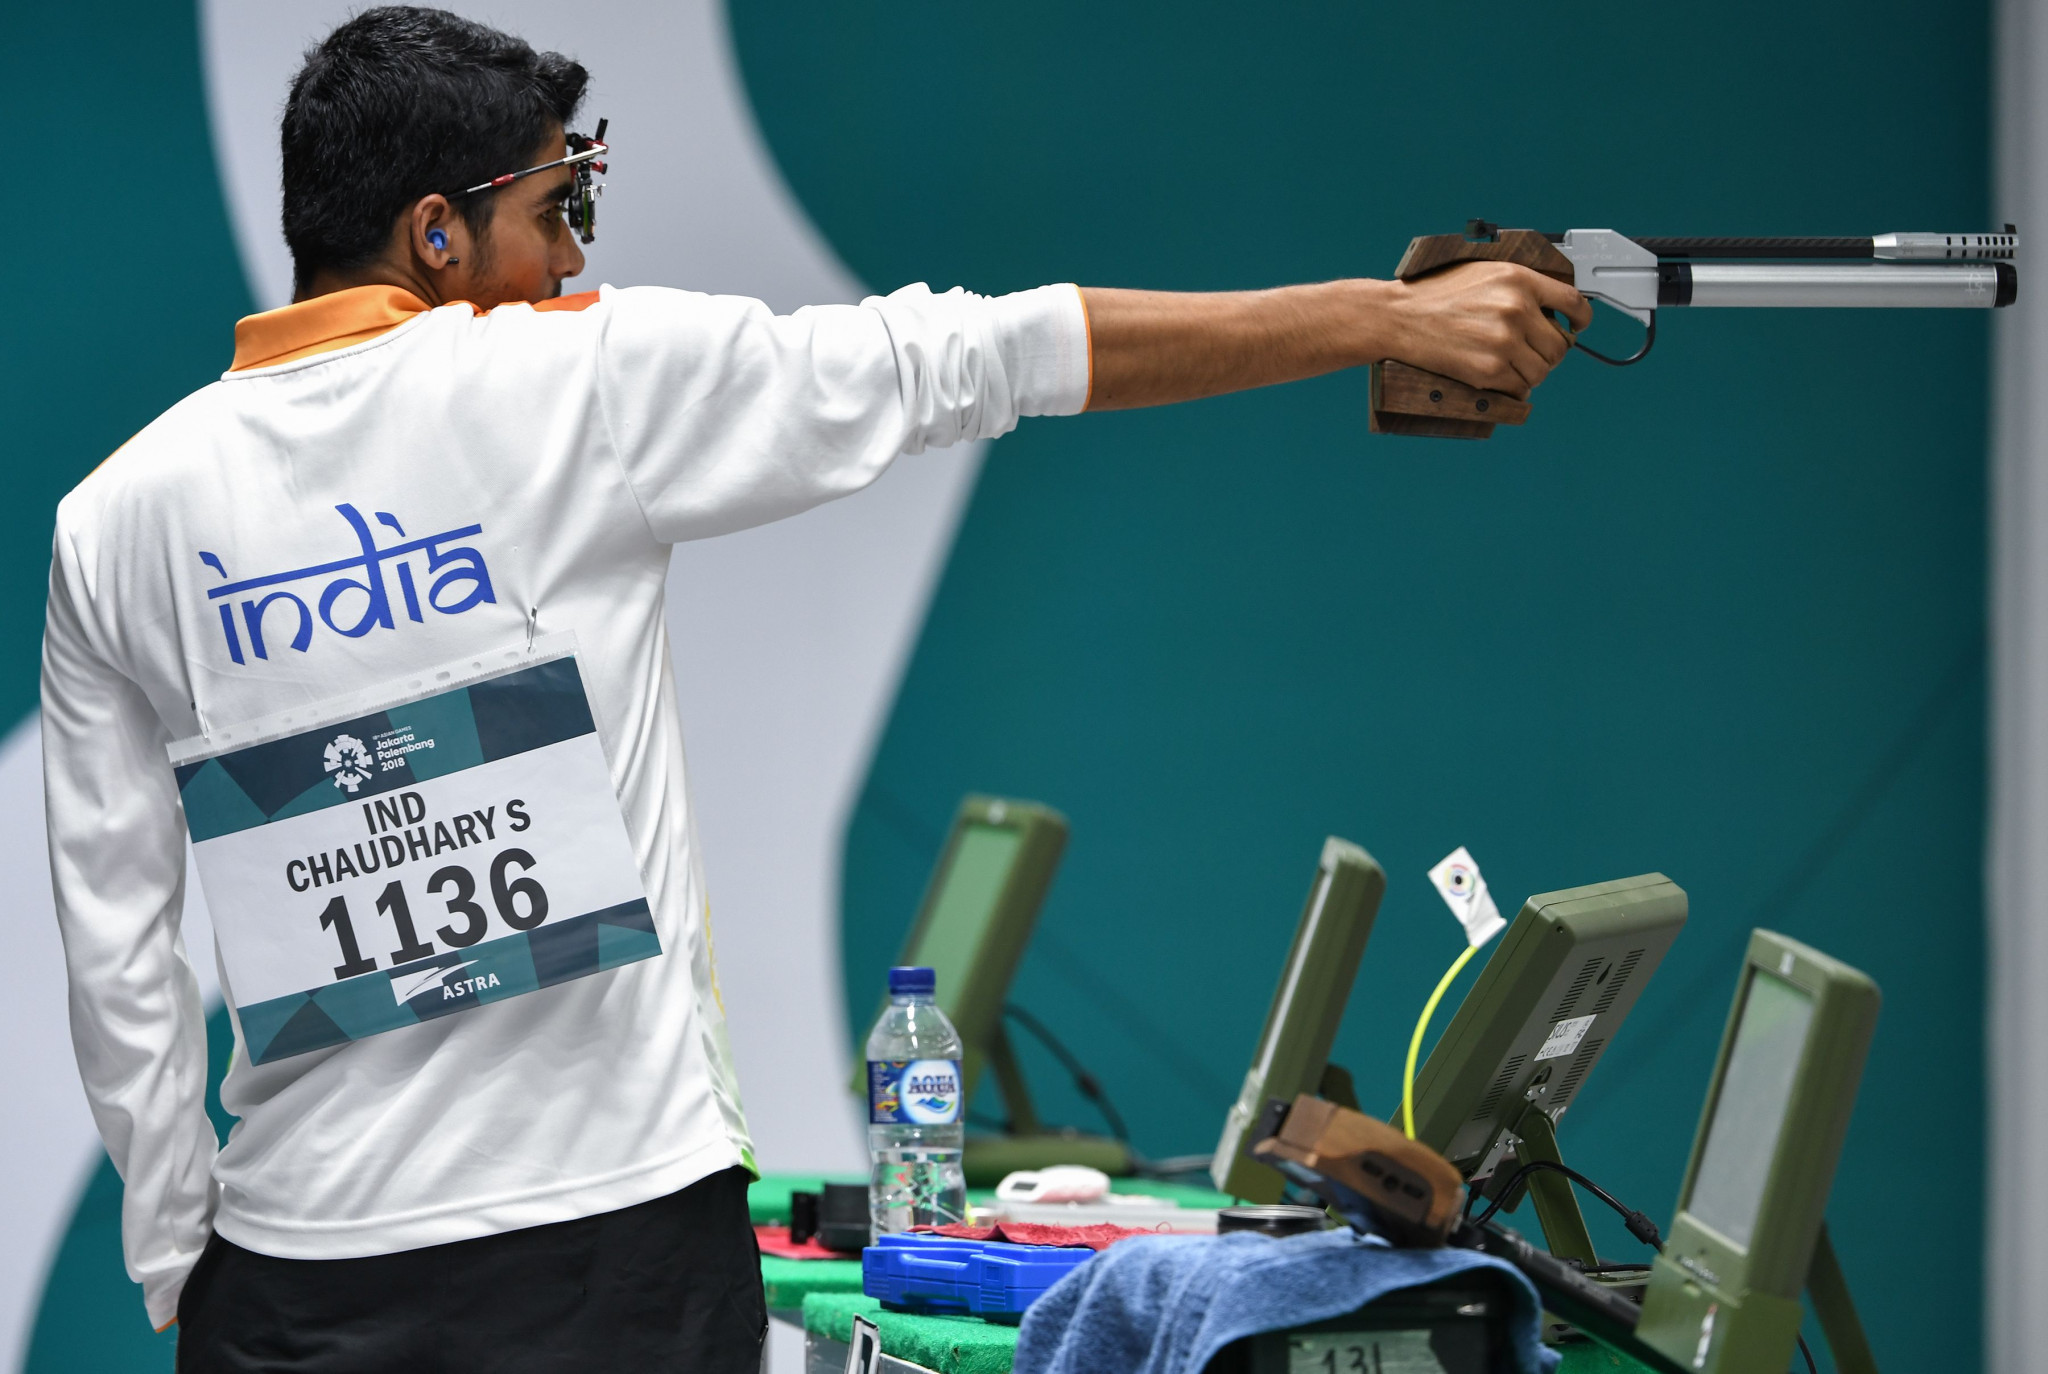 India's Saurabh Chaudhary won silver behind the North Korean ©Getty Images